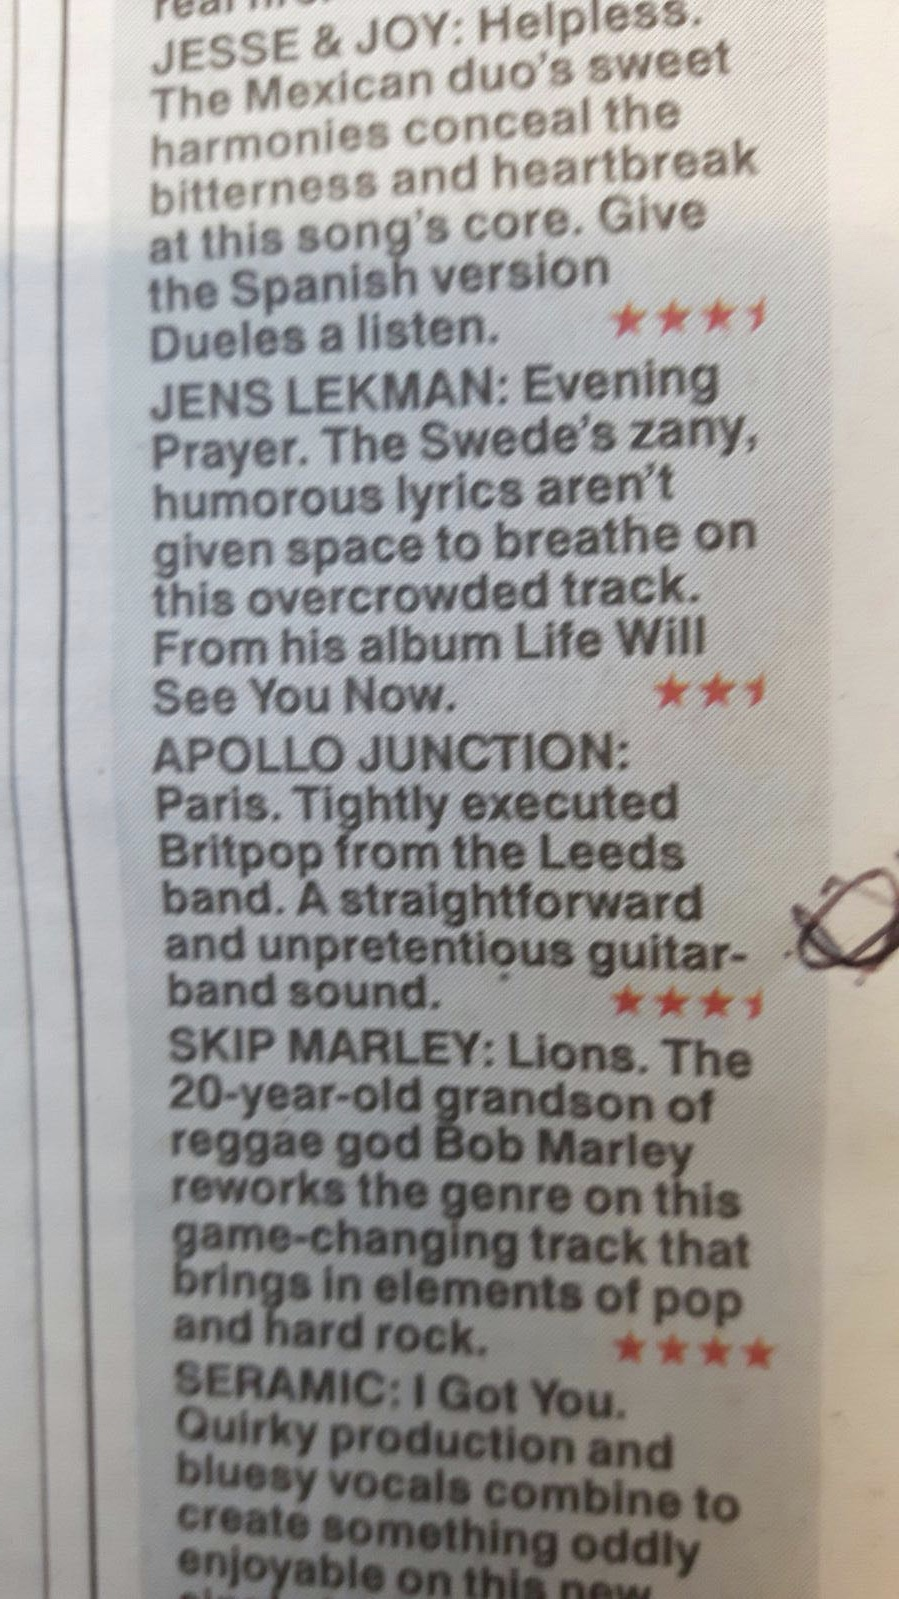 The Sun: Hot Tracks of the Week